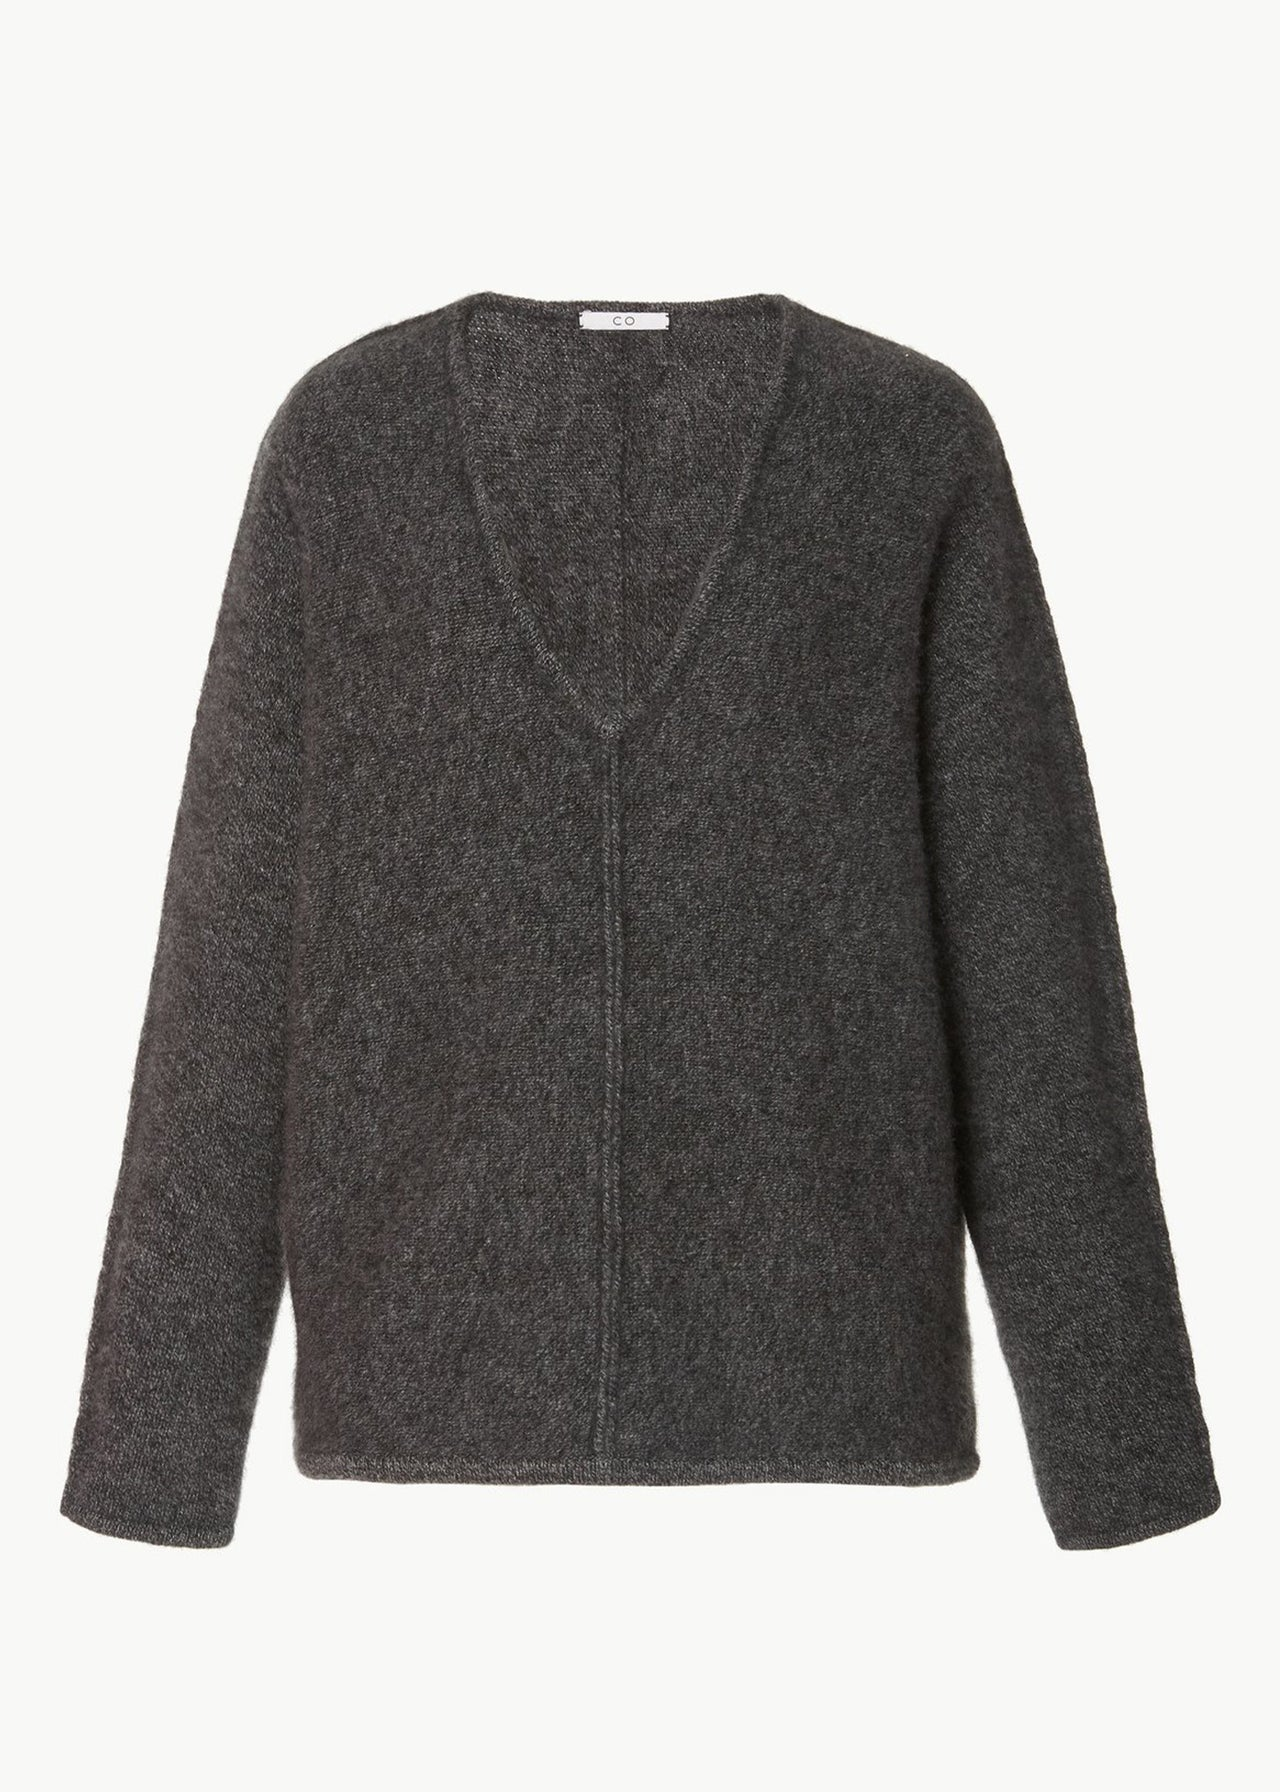 V-Neck Cashmere Sweater - Charcoal